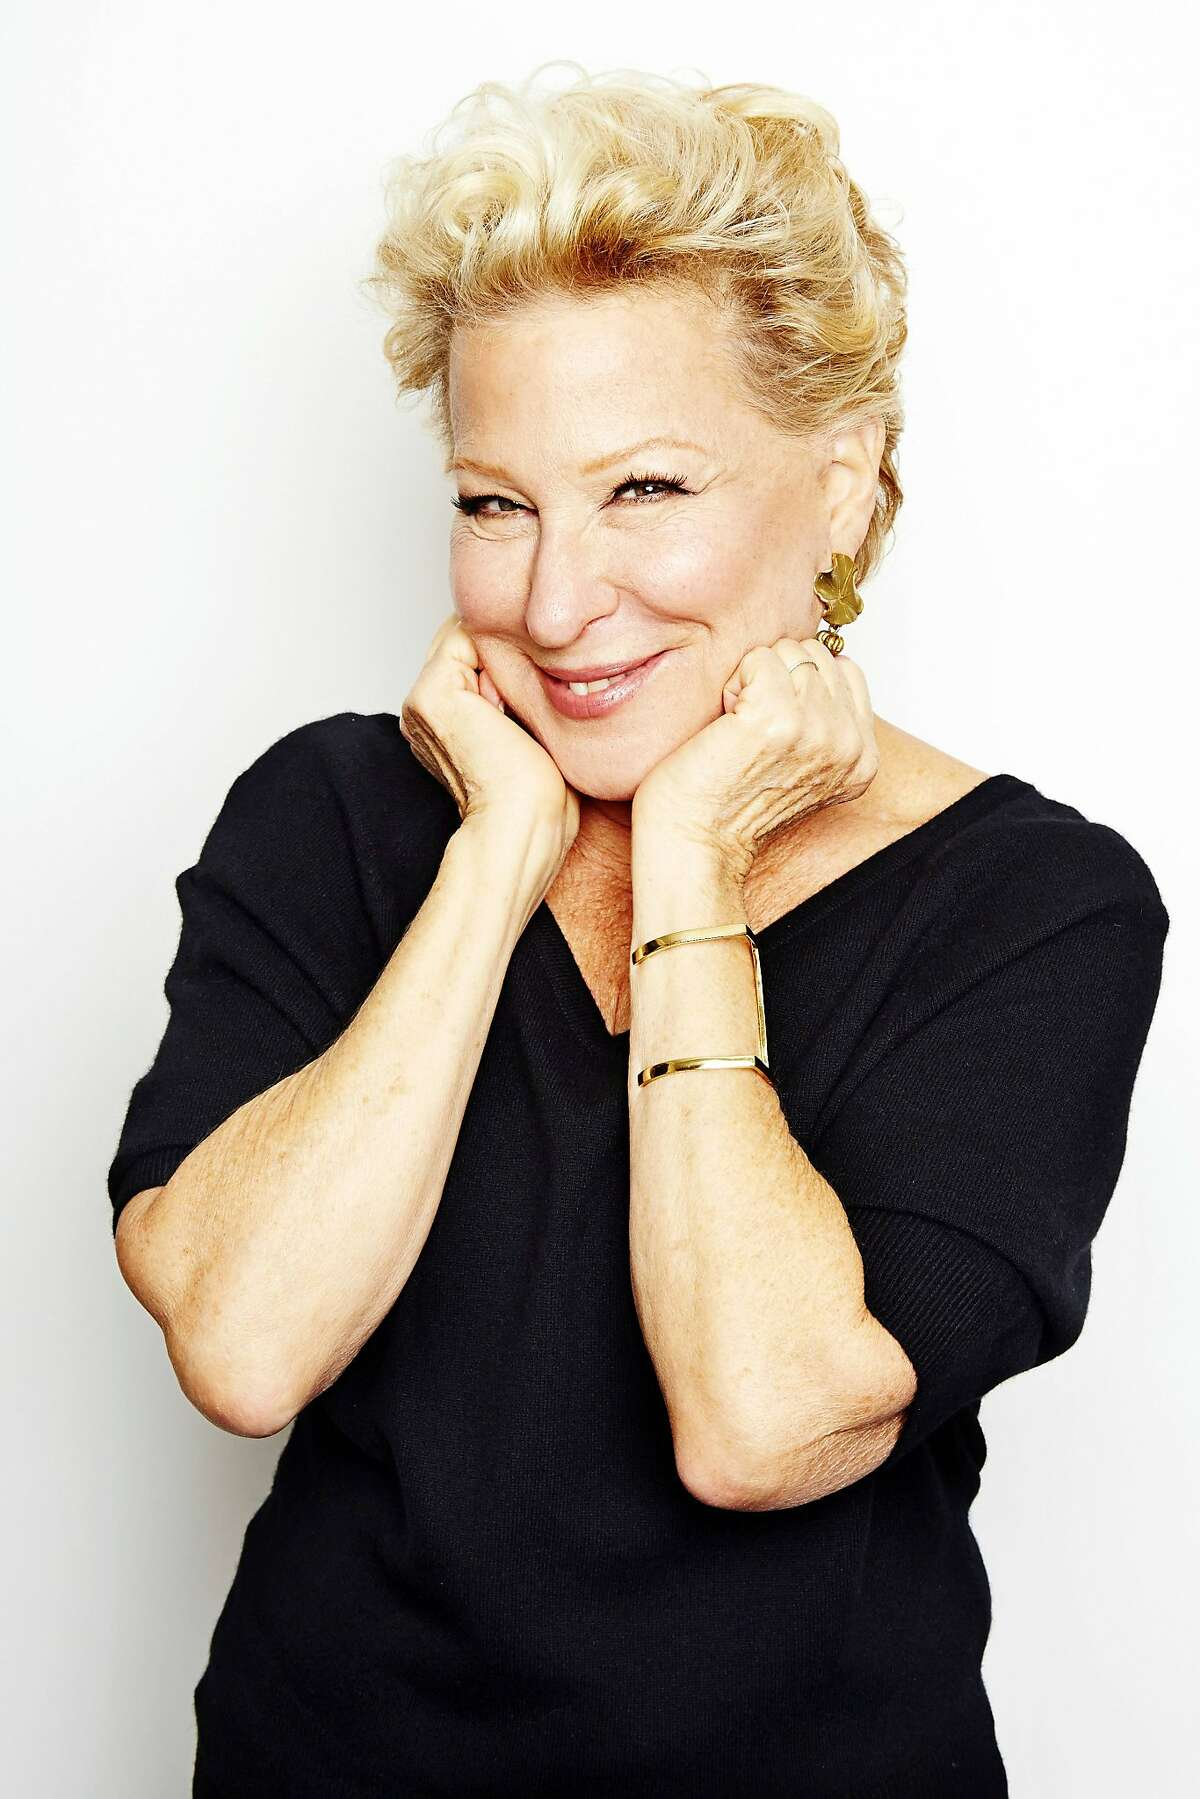 """In this Oct. 7, 2014 photo, entertainer Bette Midler poses for a portrait in promotion of her upcoming album """"It's the Girls!"""" in New York. The album is an eclectic collection of covers of 15 famous songs by seven decades of girl groups, from The Andrews Sisters to TLC. It's also Midler's 25th album and first studio offering in eight years. (Photo by Dan Hallman/Invision/AP)"""